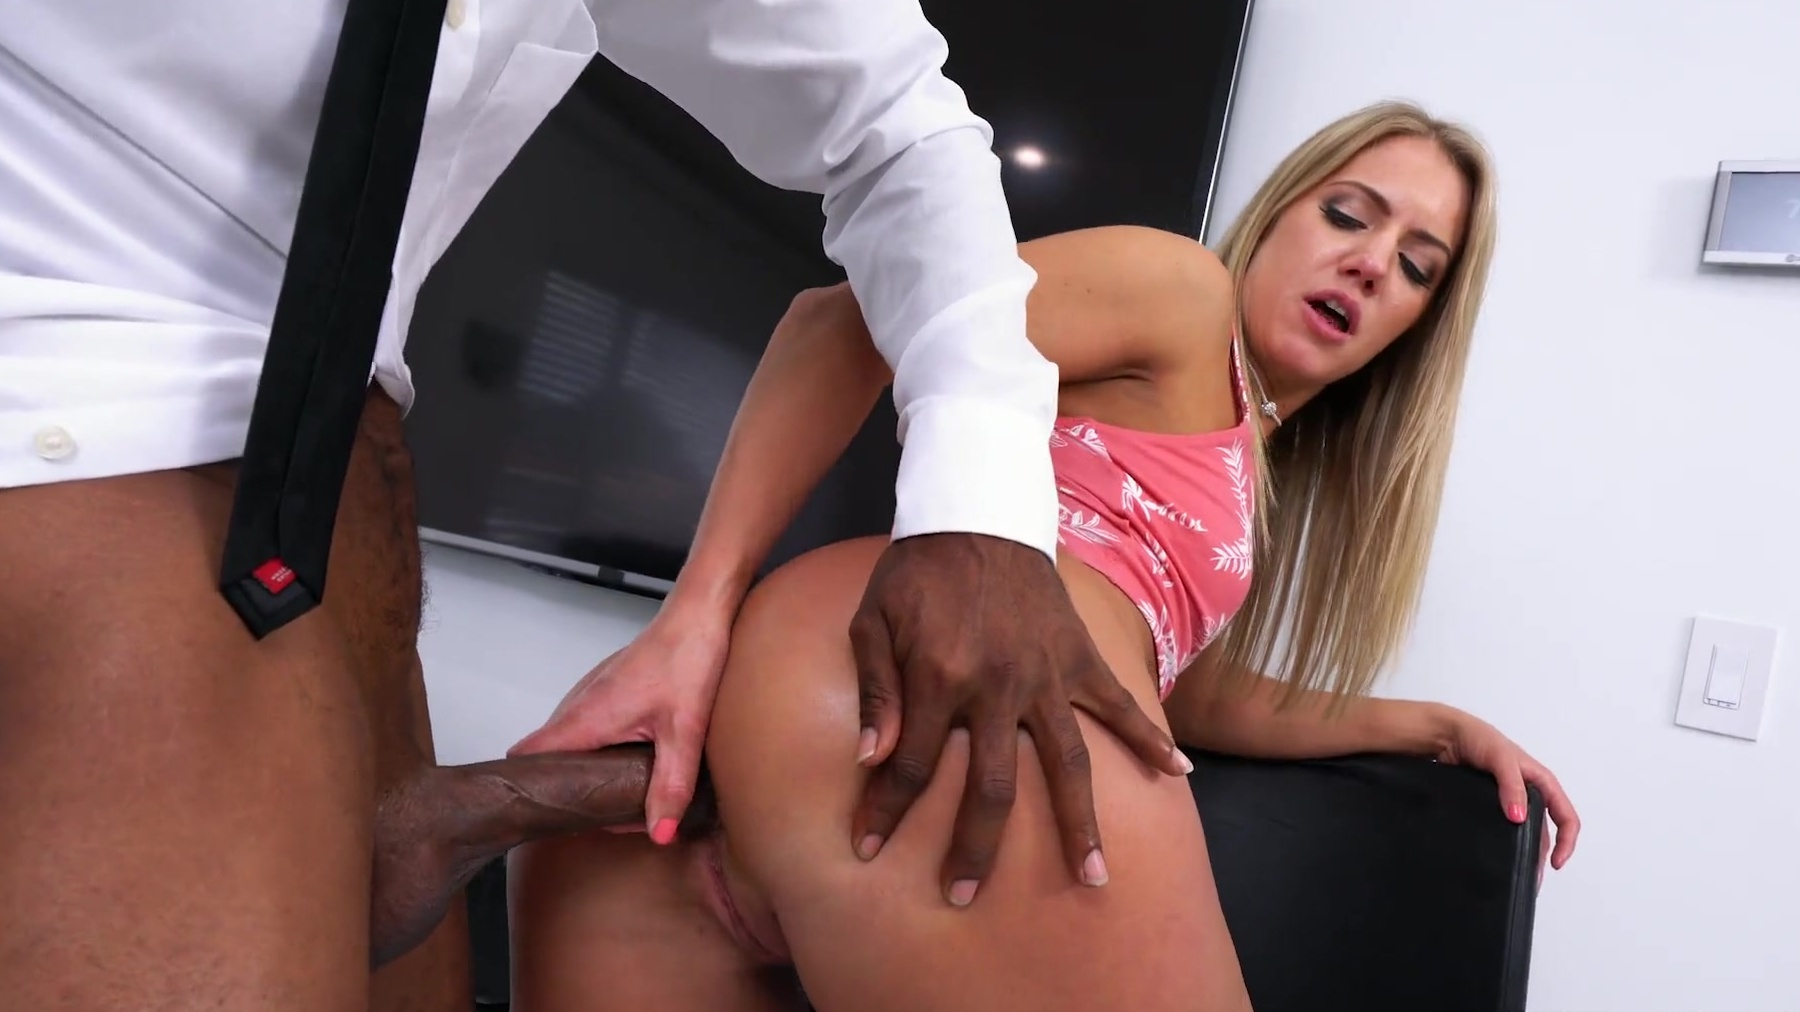 Candice anal